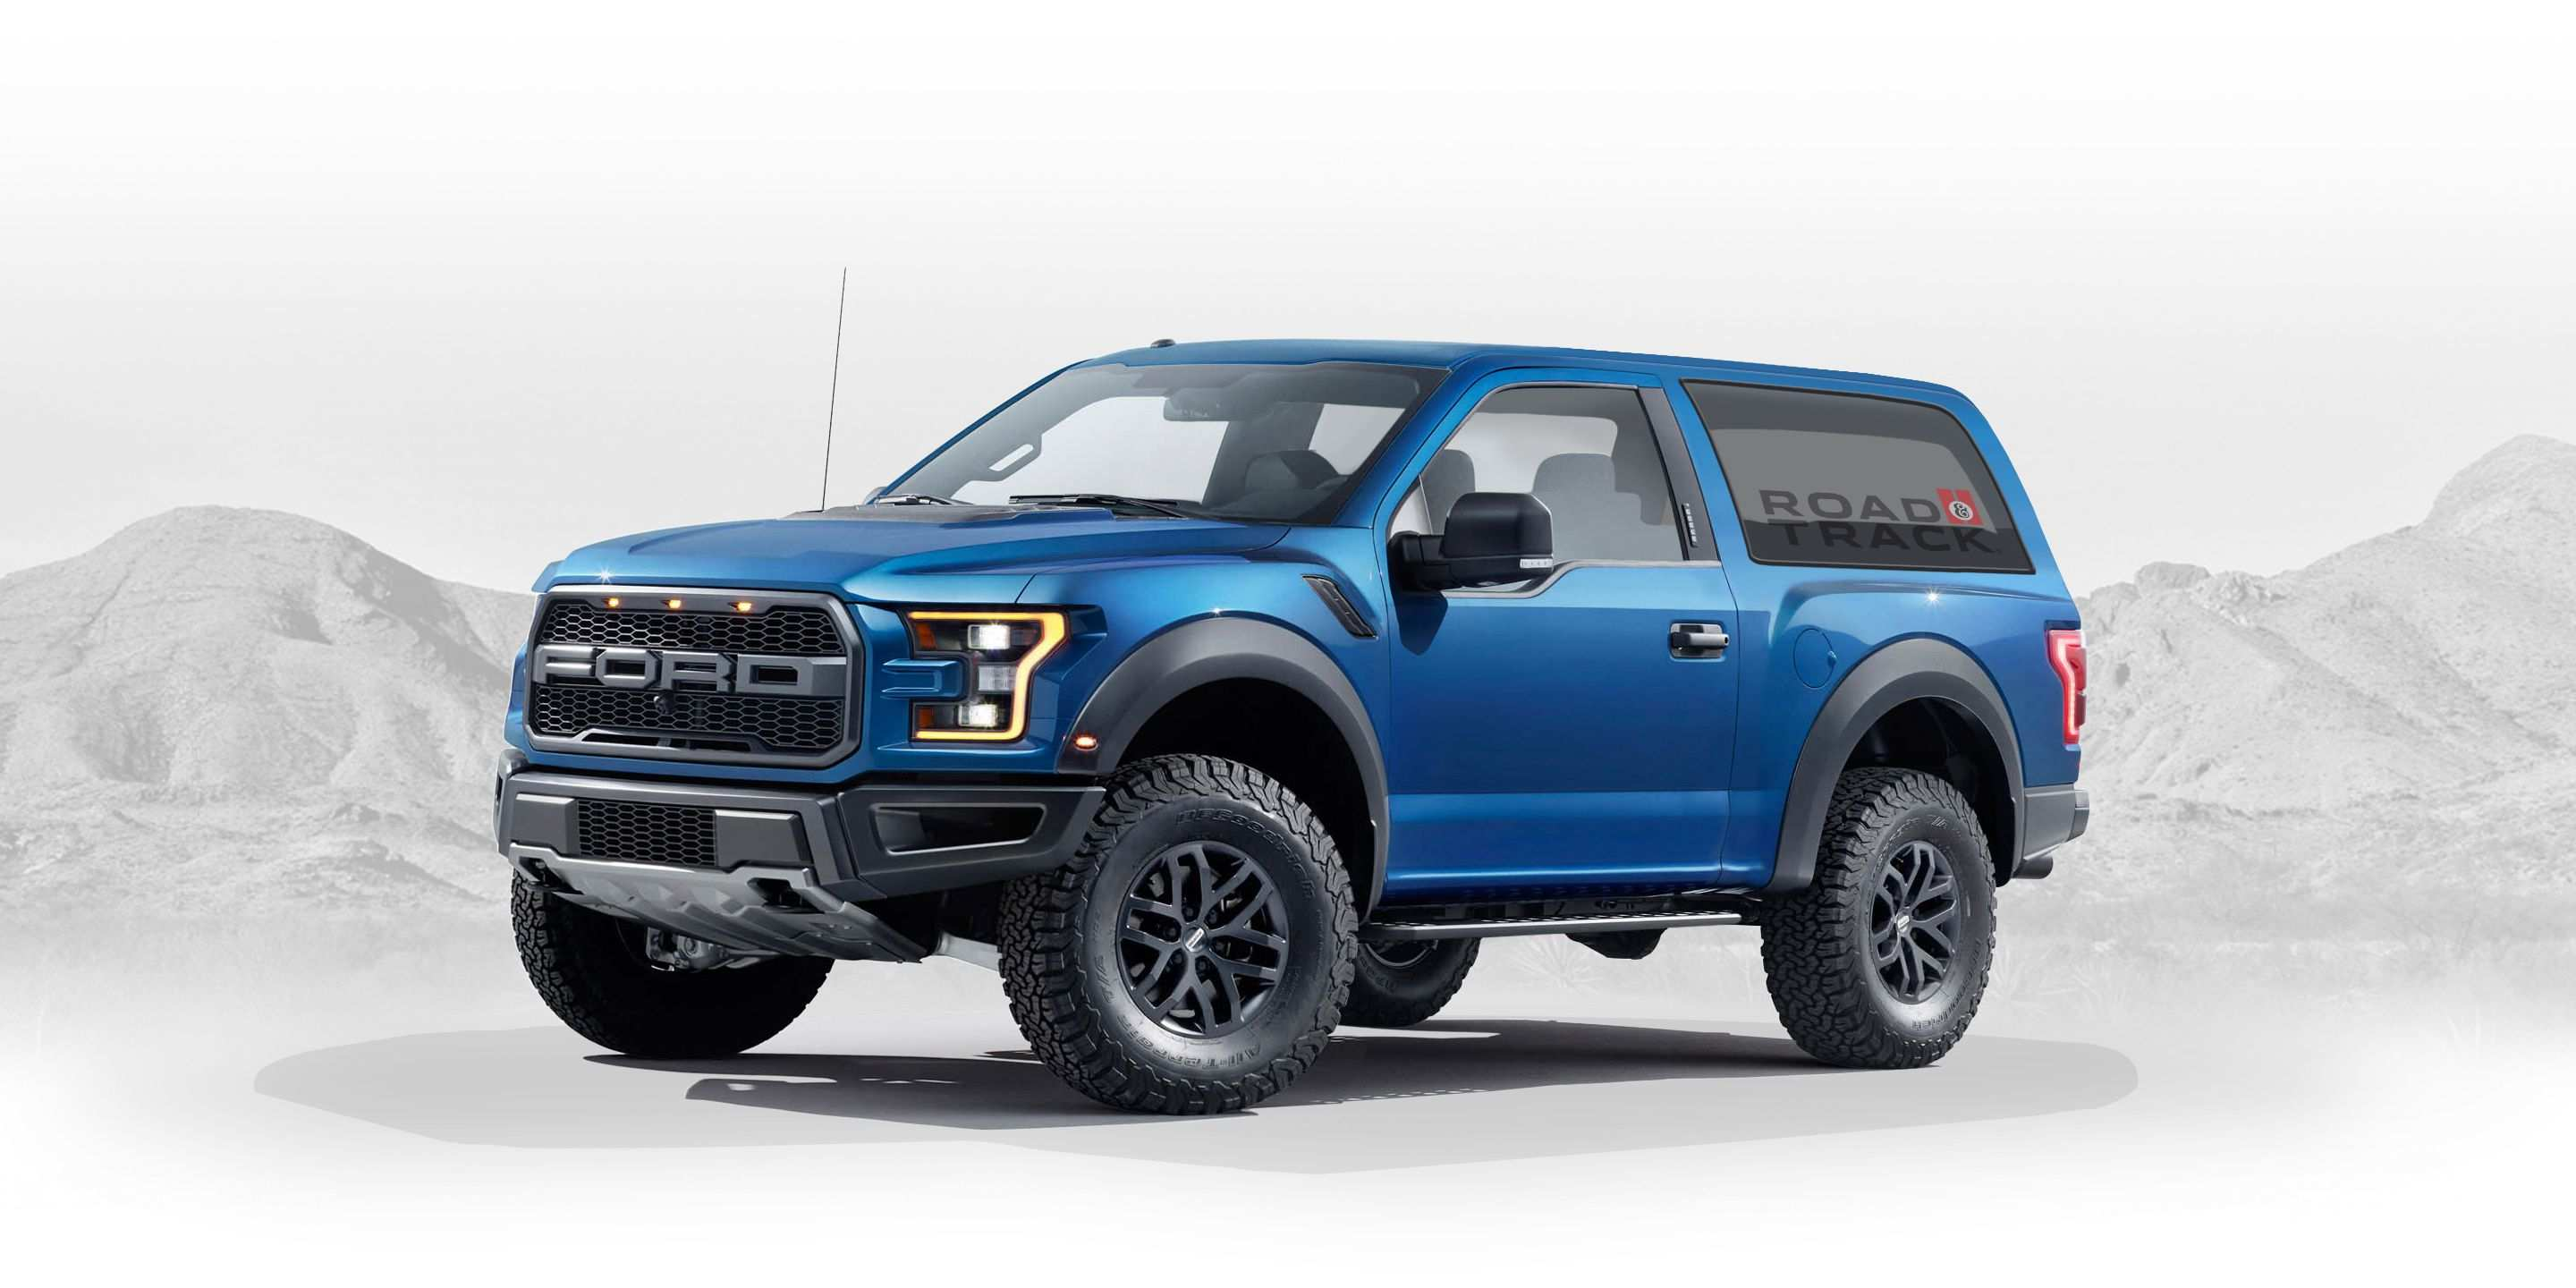 62 Concept of 2019 Ford Bronco Gas Mileage Specs and Review with 2019 Ford Bronco Gas Mileage